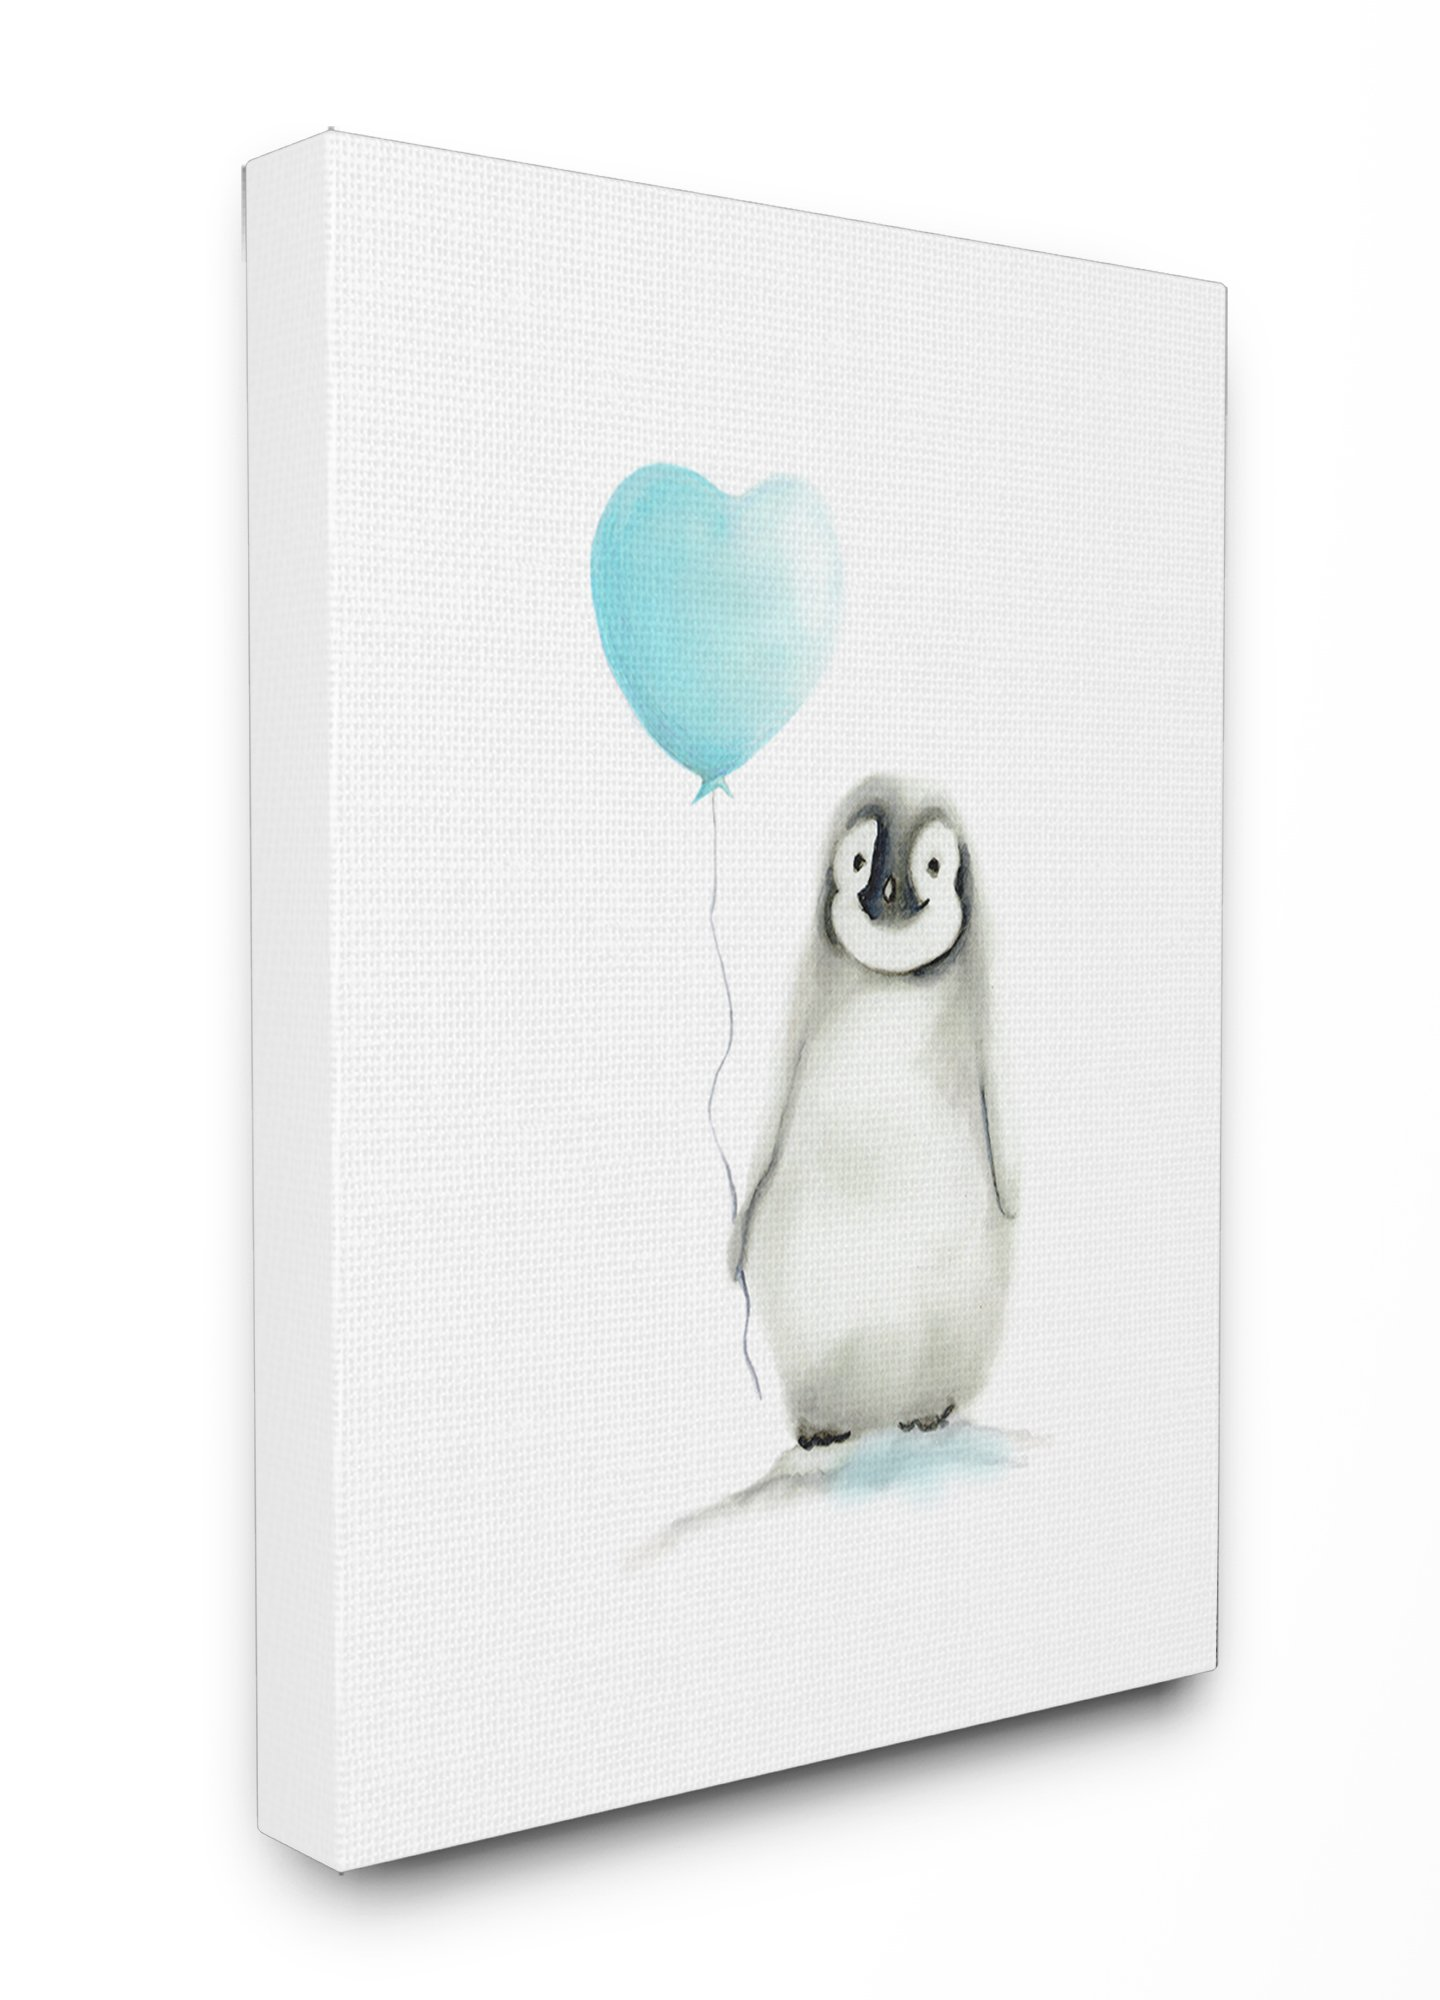 Stupell Industries Baby Penguin with Blue Balloon XXL Stretched Canvas Wall Art, 30 x 1.5 x 40, Proudly Made in USA by The Kids Room by Stupell